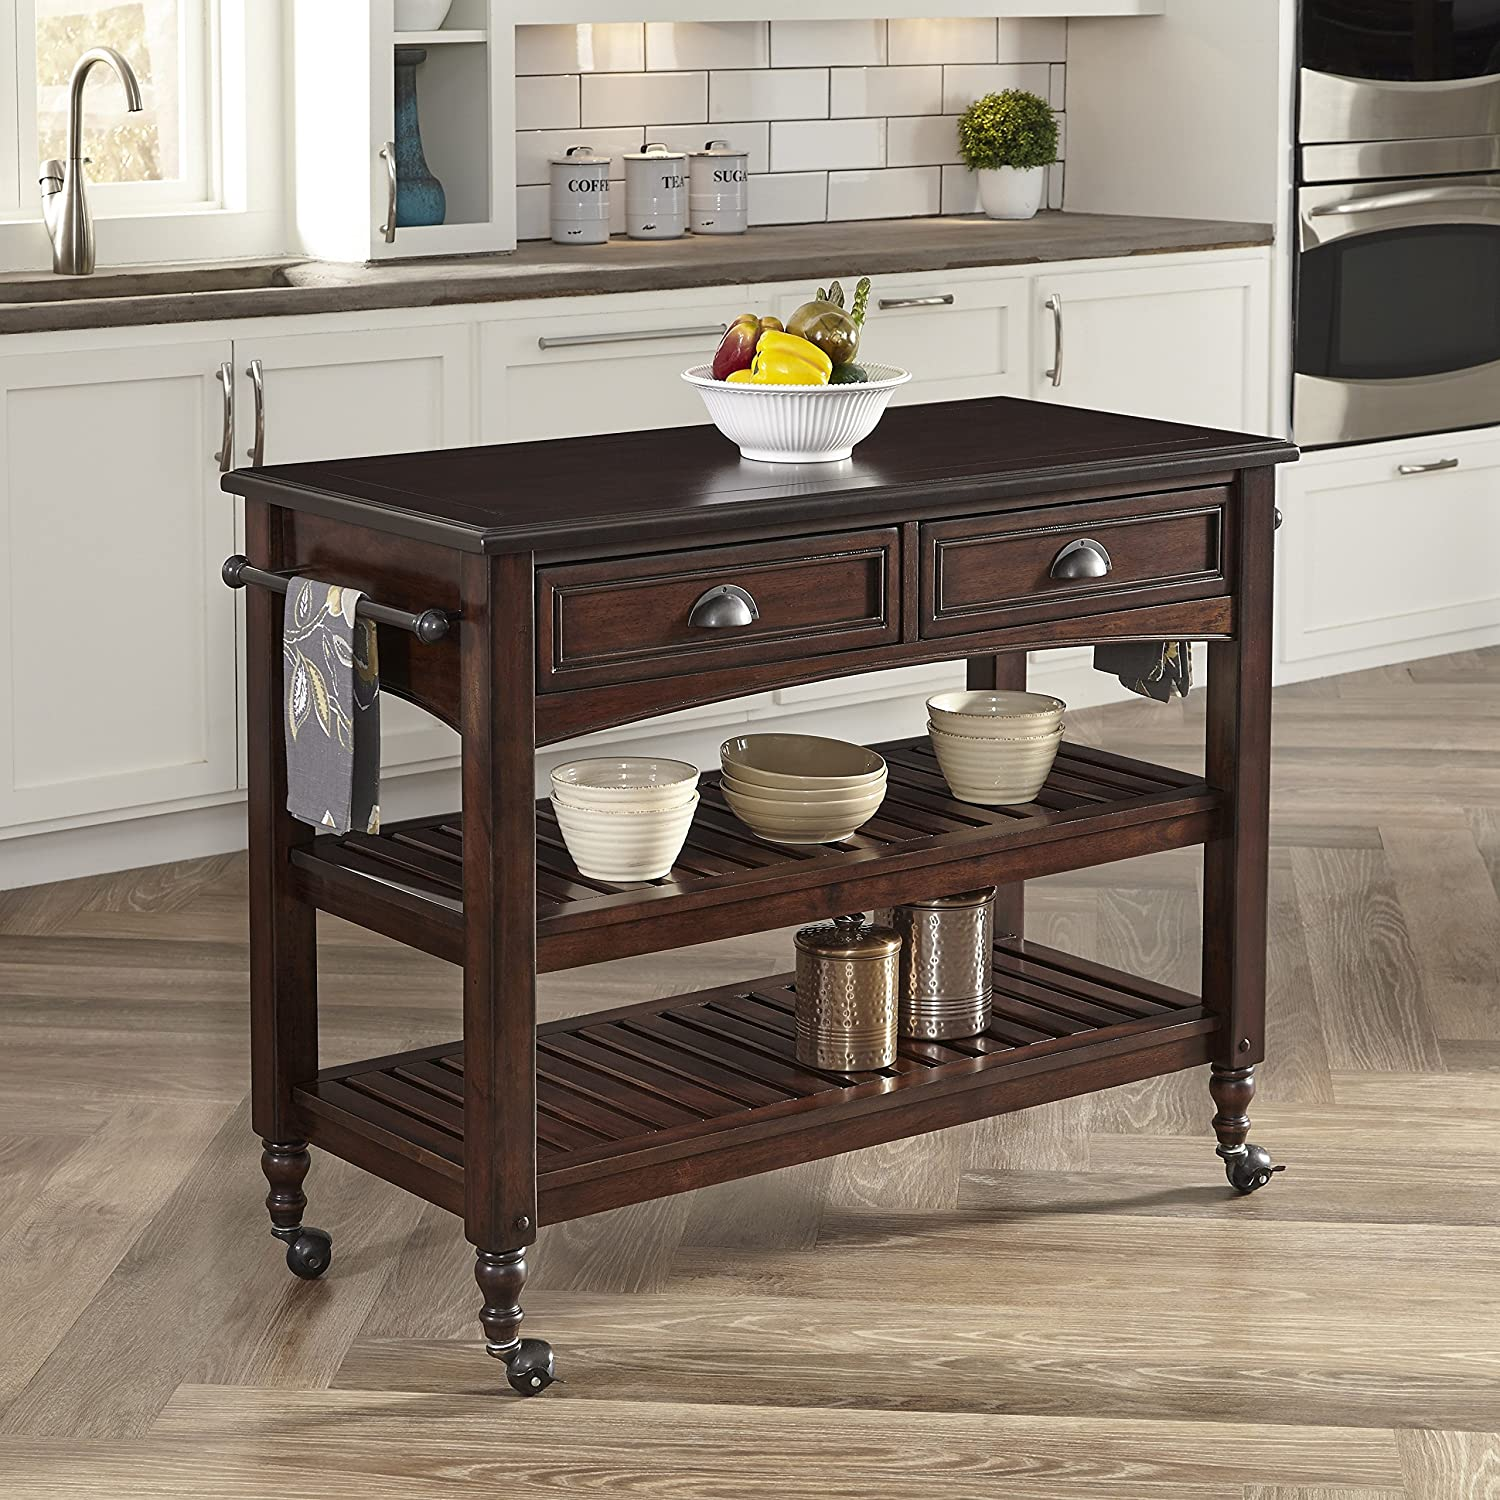 Amazon Home Styles 5522 9501 Country fort Kitchen Cart